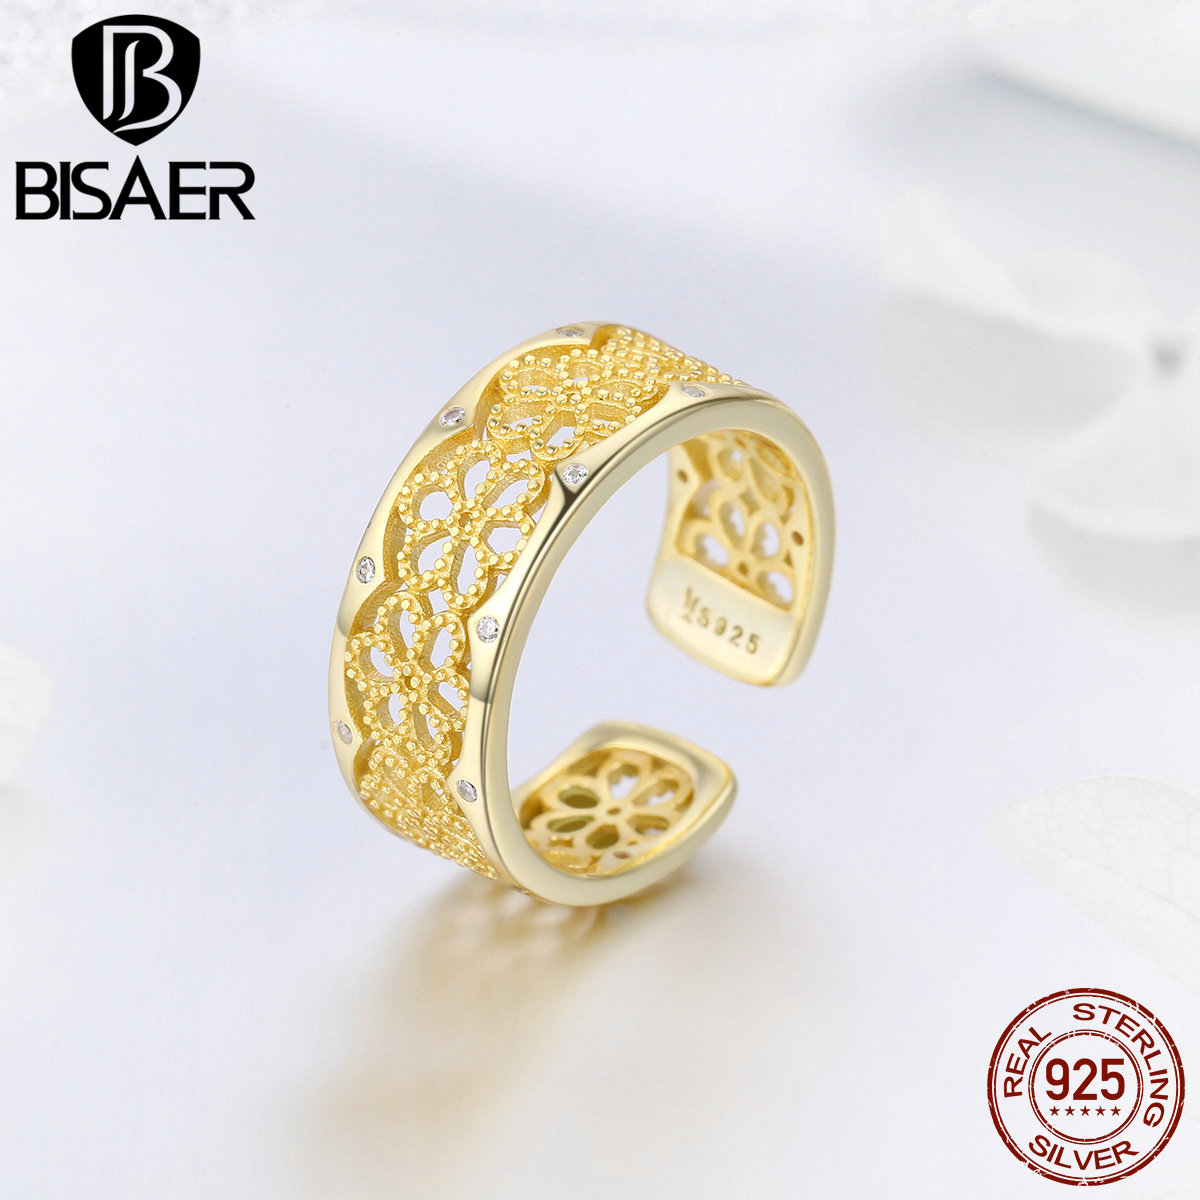 Bisaer 925 Sterling Silver Vintage Wave Geometric Adjustable Ring Gold Lace Finger Rings For Women Silver Jewelry Anel Ecr460